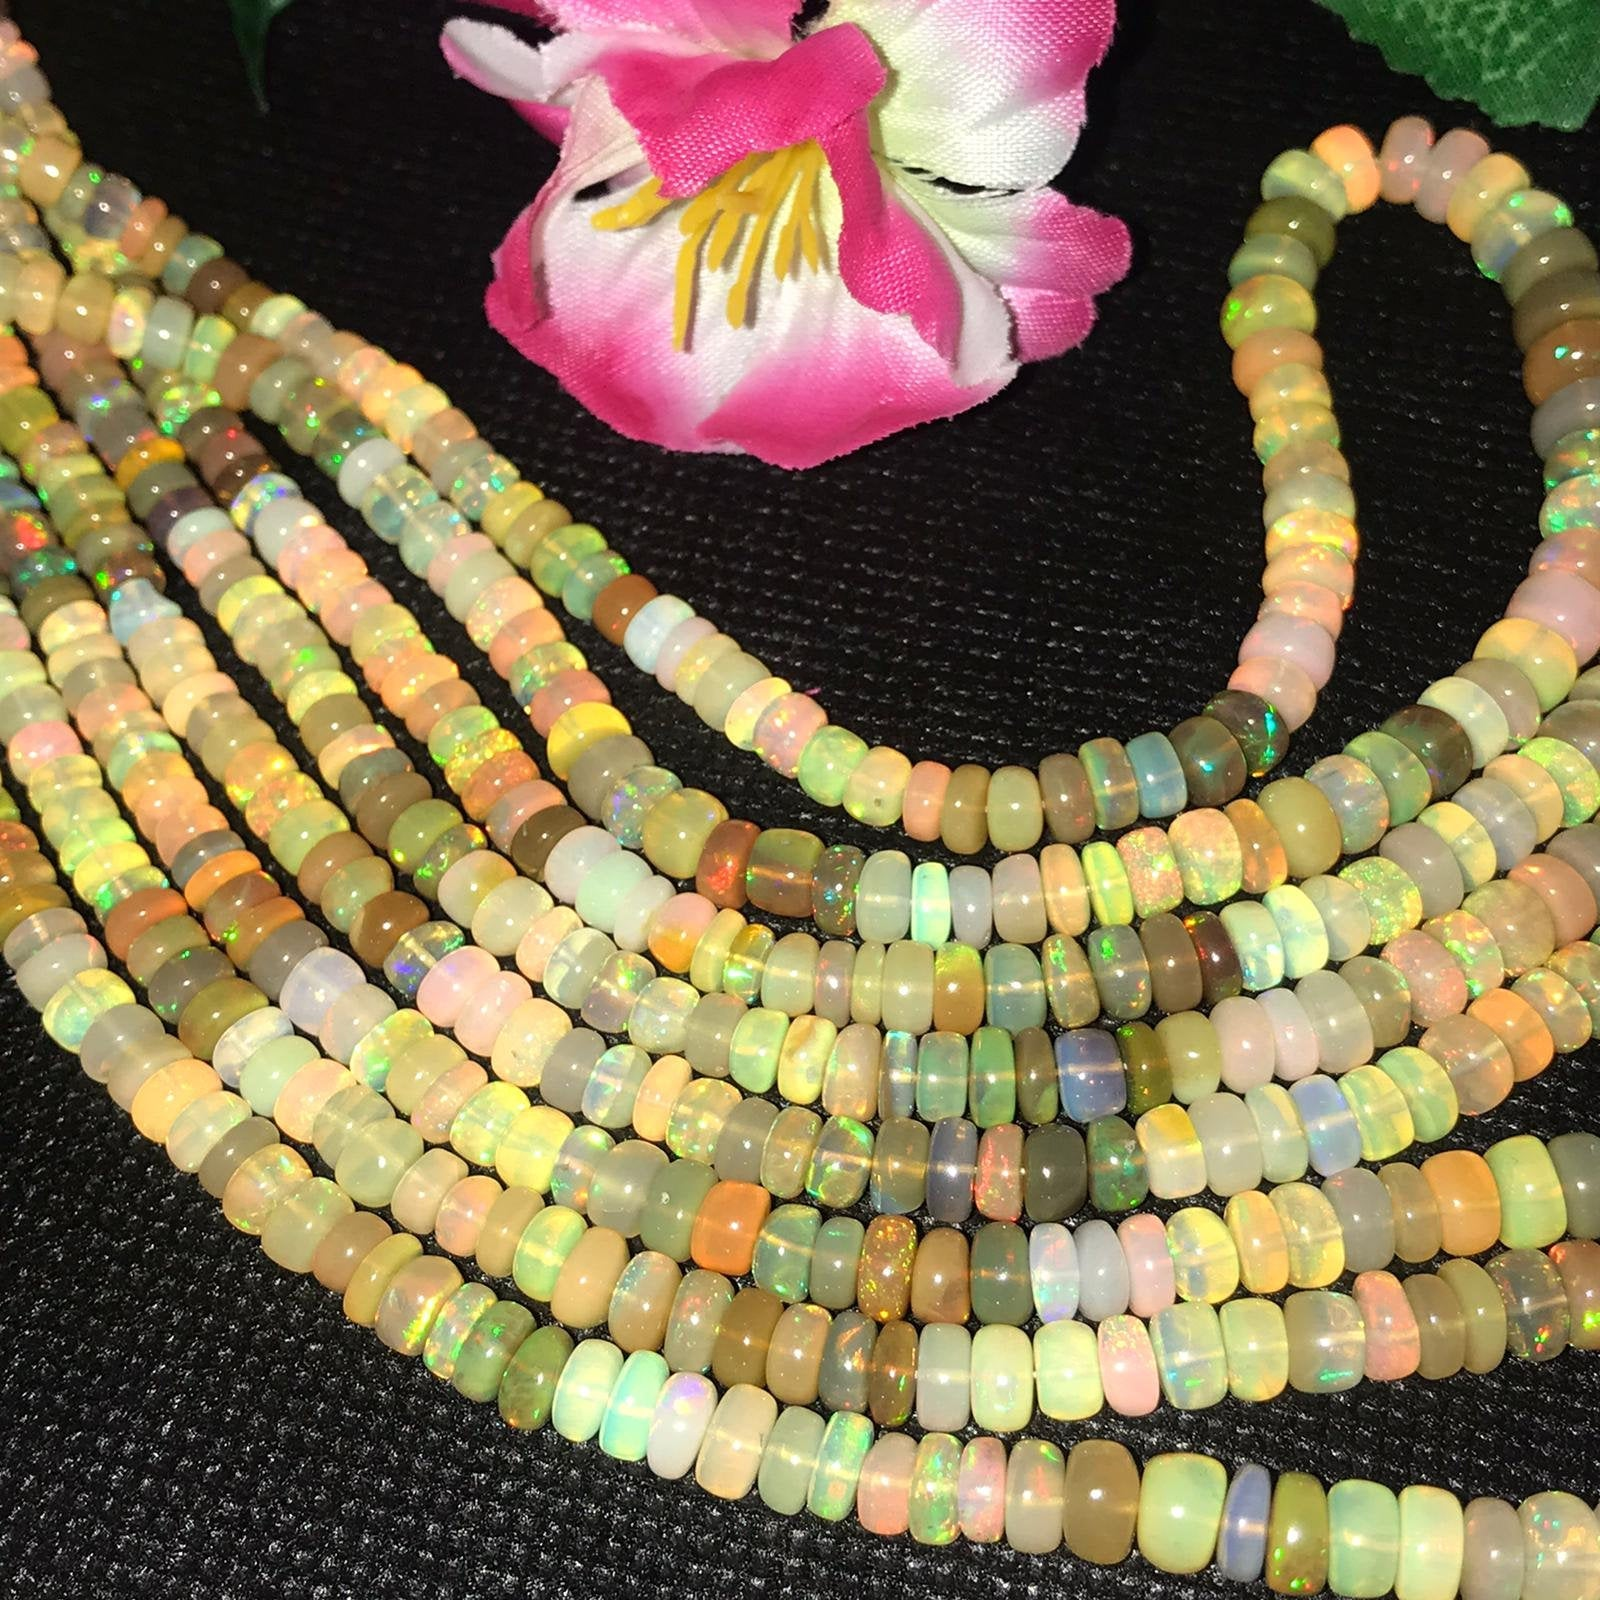 Quality Roundel Beads 16inch Long Strand Full Flashy Fire Necklace E41 Amazing Quality Natural Ethiopian Opal Beads 3MM To 4MM Size AAA+